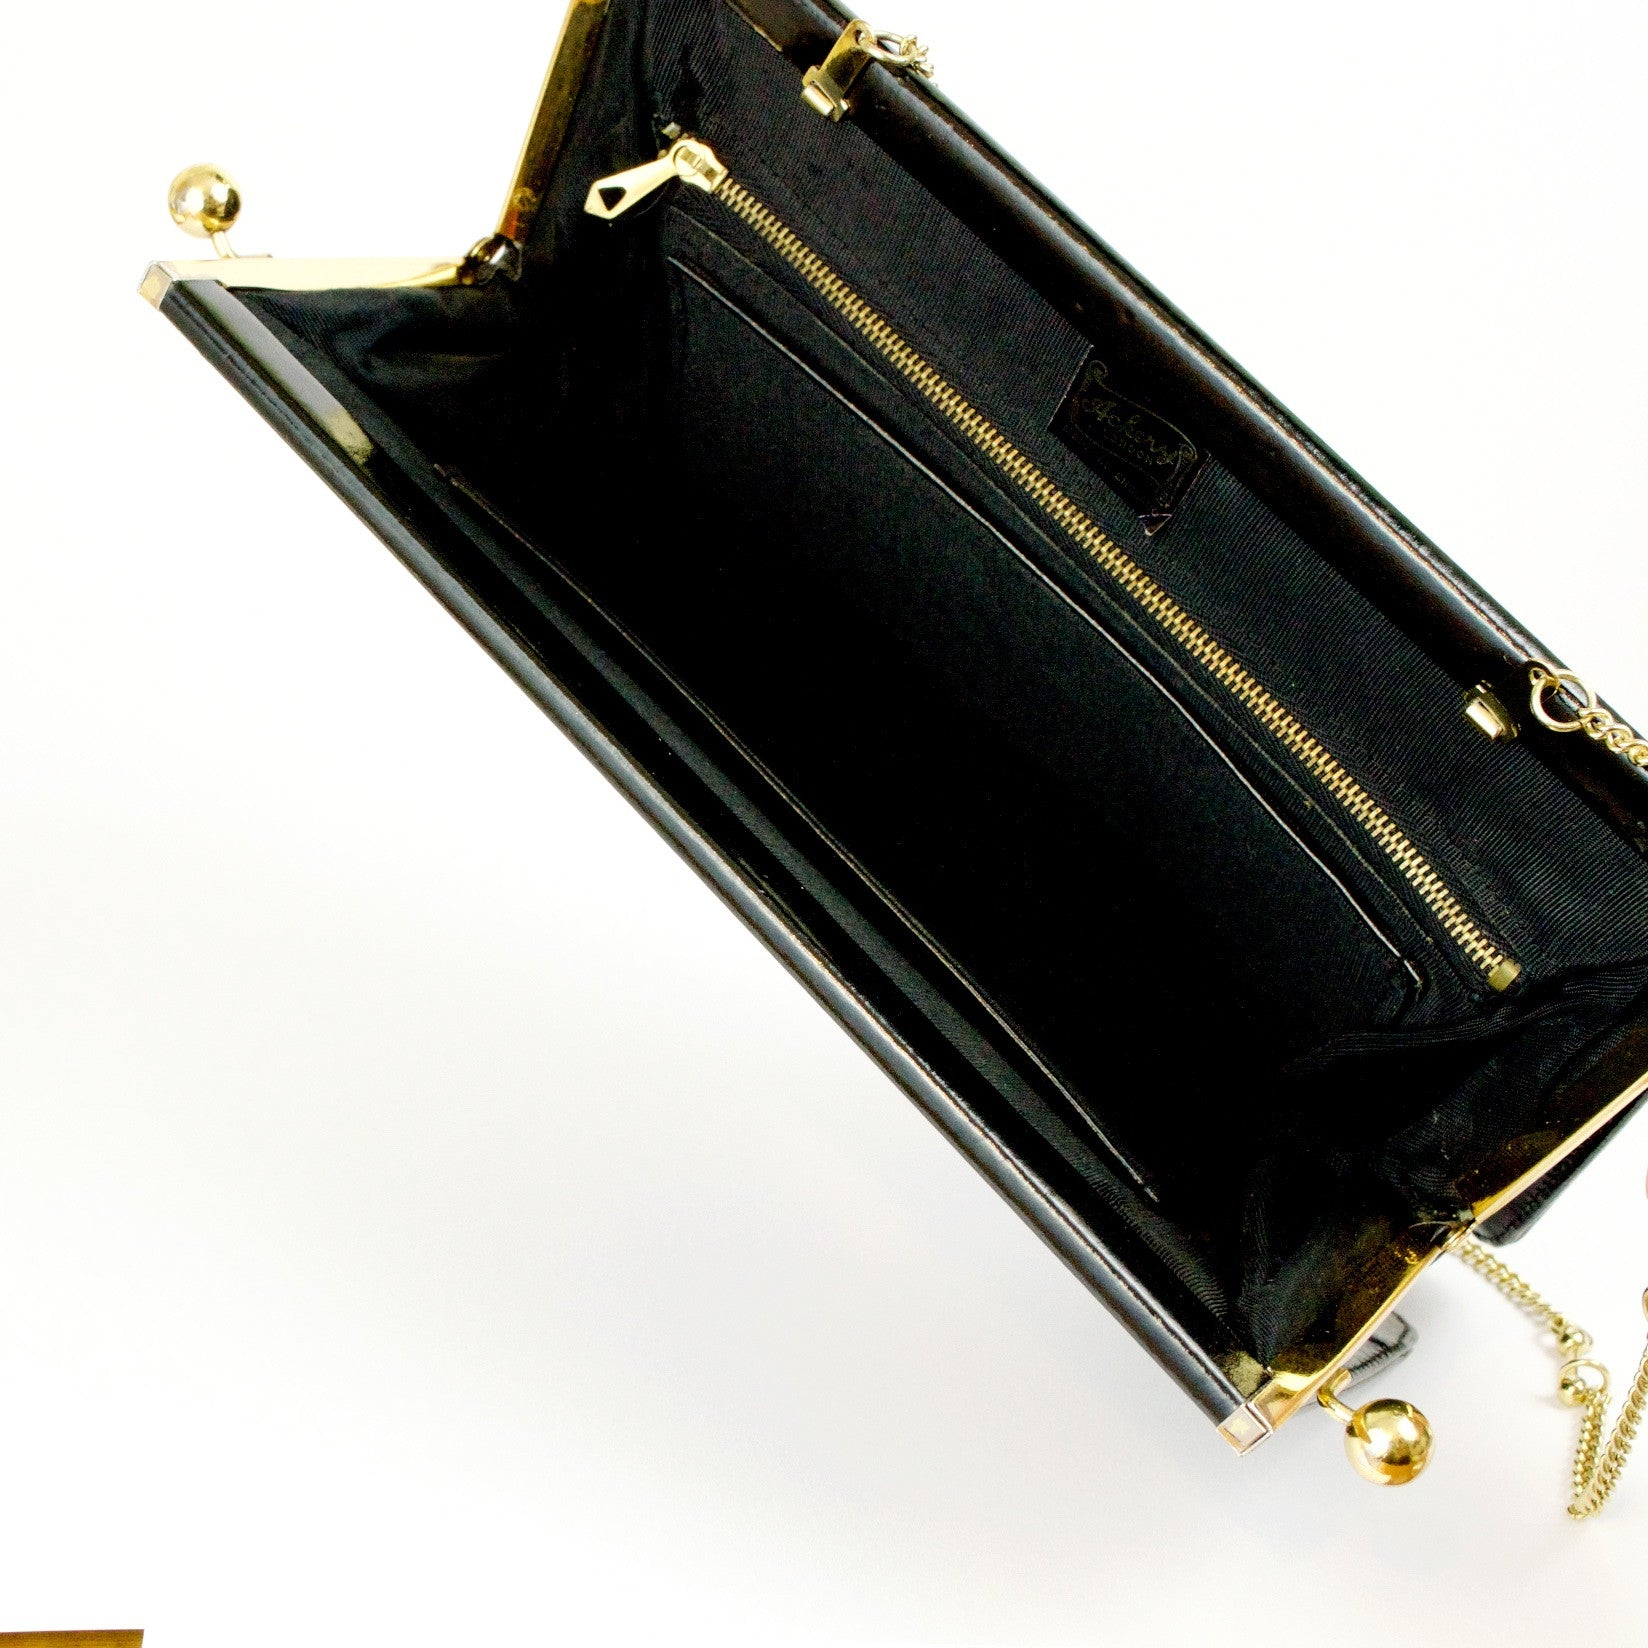 Vintage black leather clutch bag with double kiss clasp by Ackery